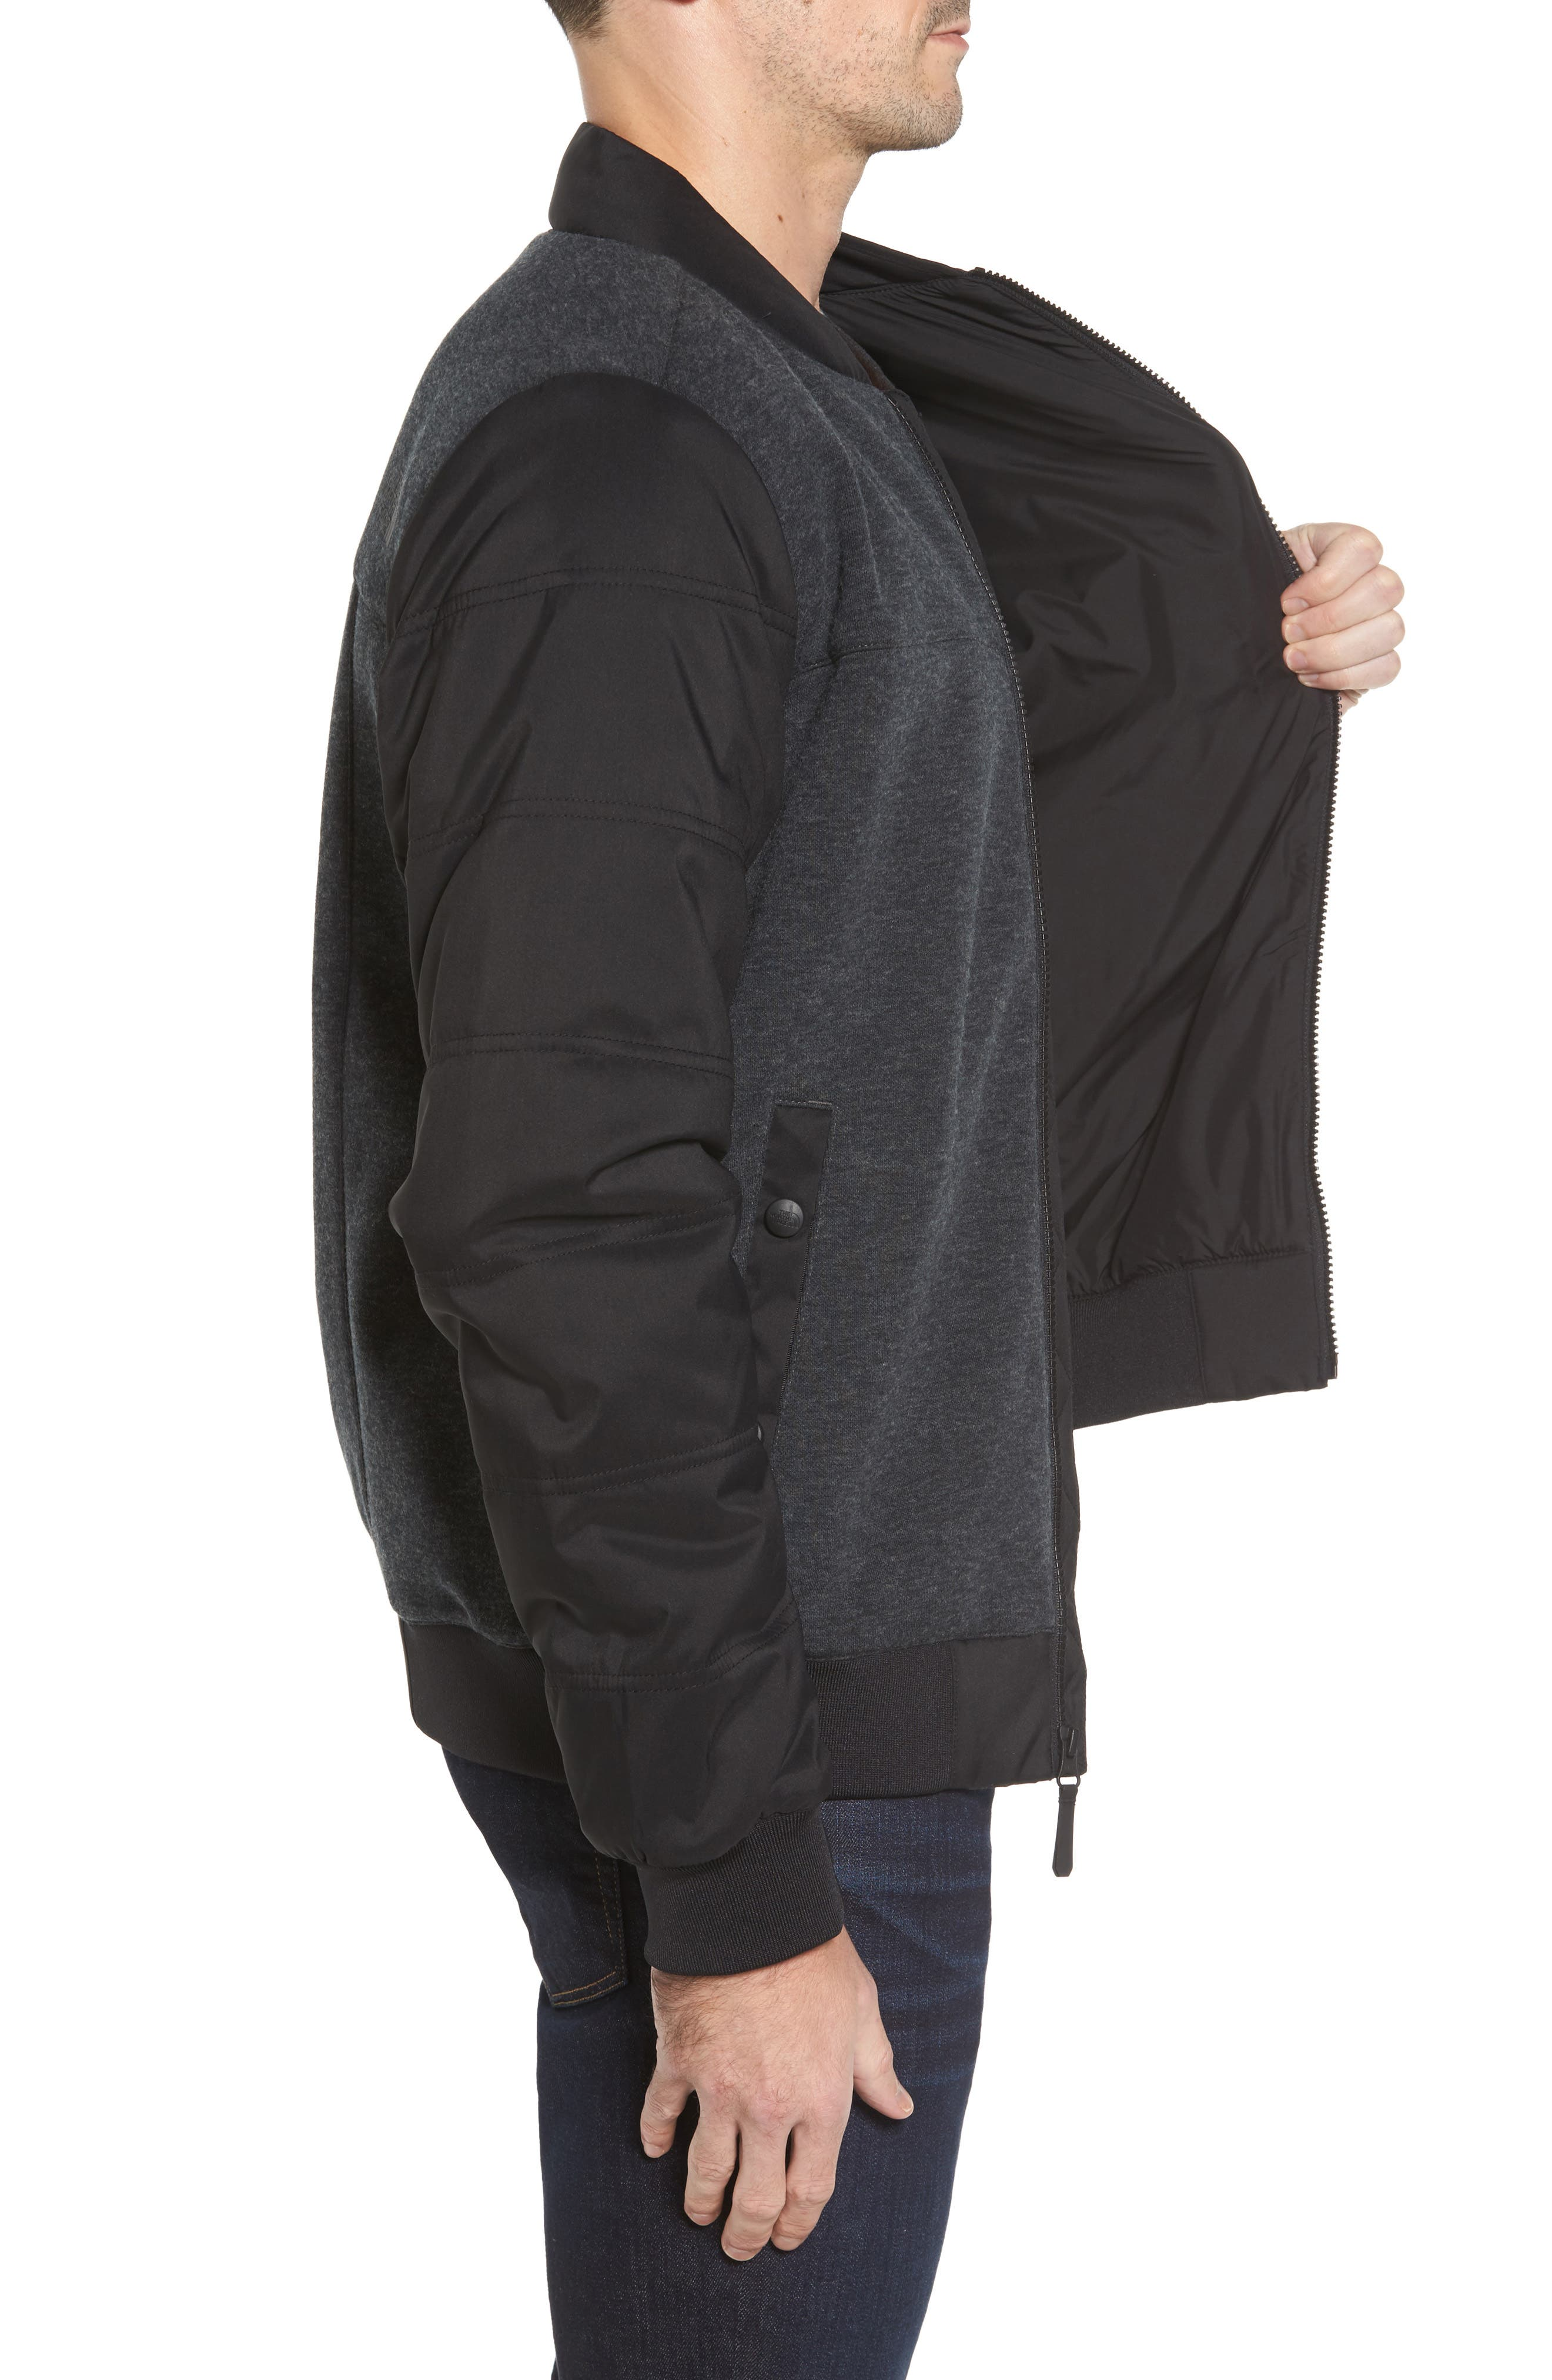 Far Northern Hybrid Bomber Jacket,                             Alternate thumbnail 3, color,                             DARK GREY HEATHER/ BLACK